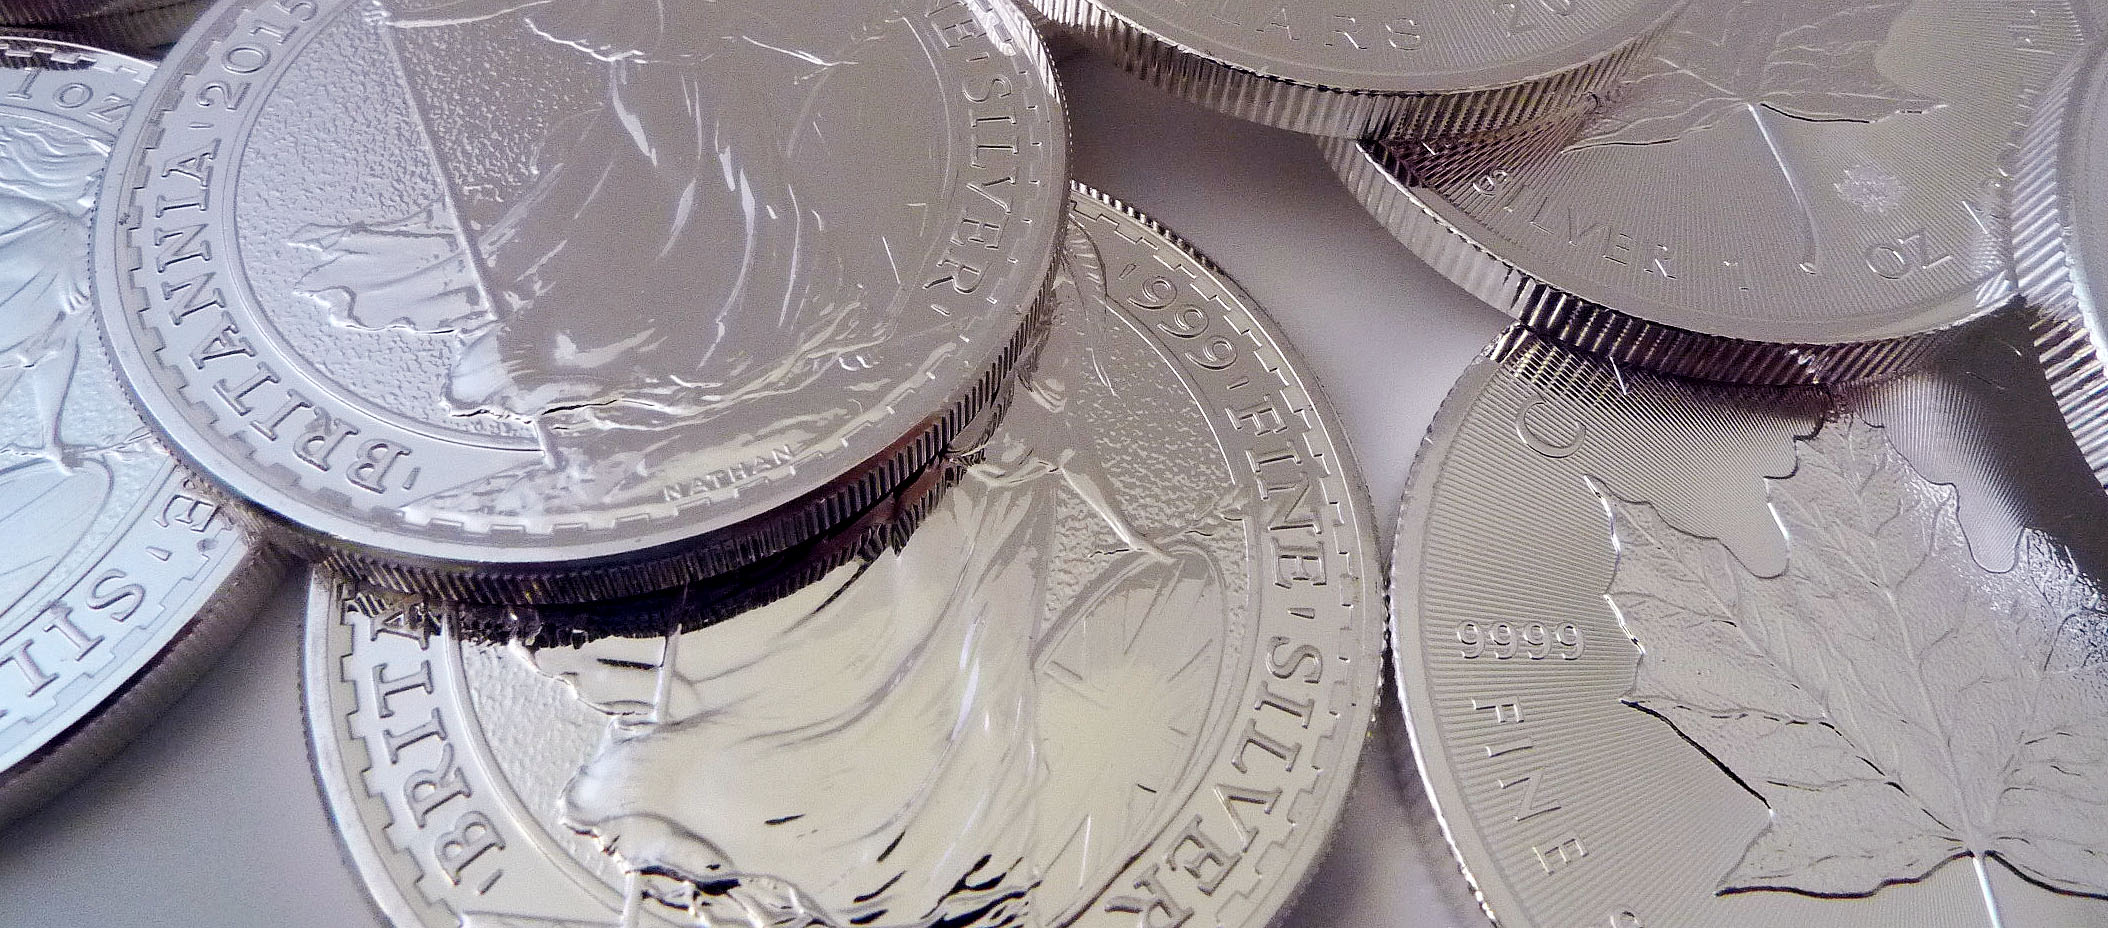 COINSUK co uk Guide to buying lower priced Silver coins vat